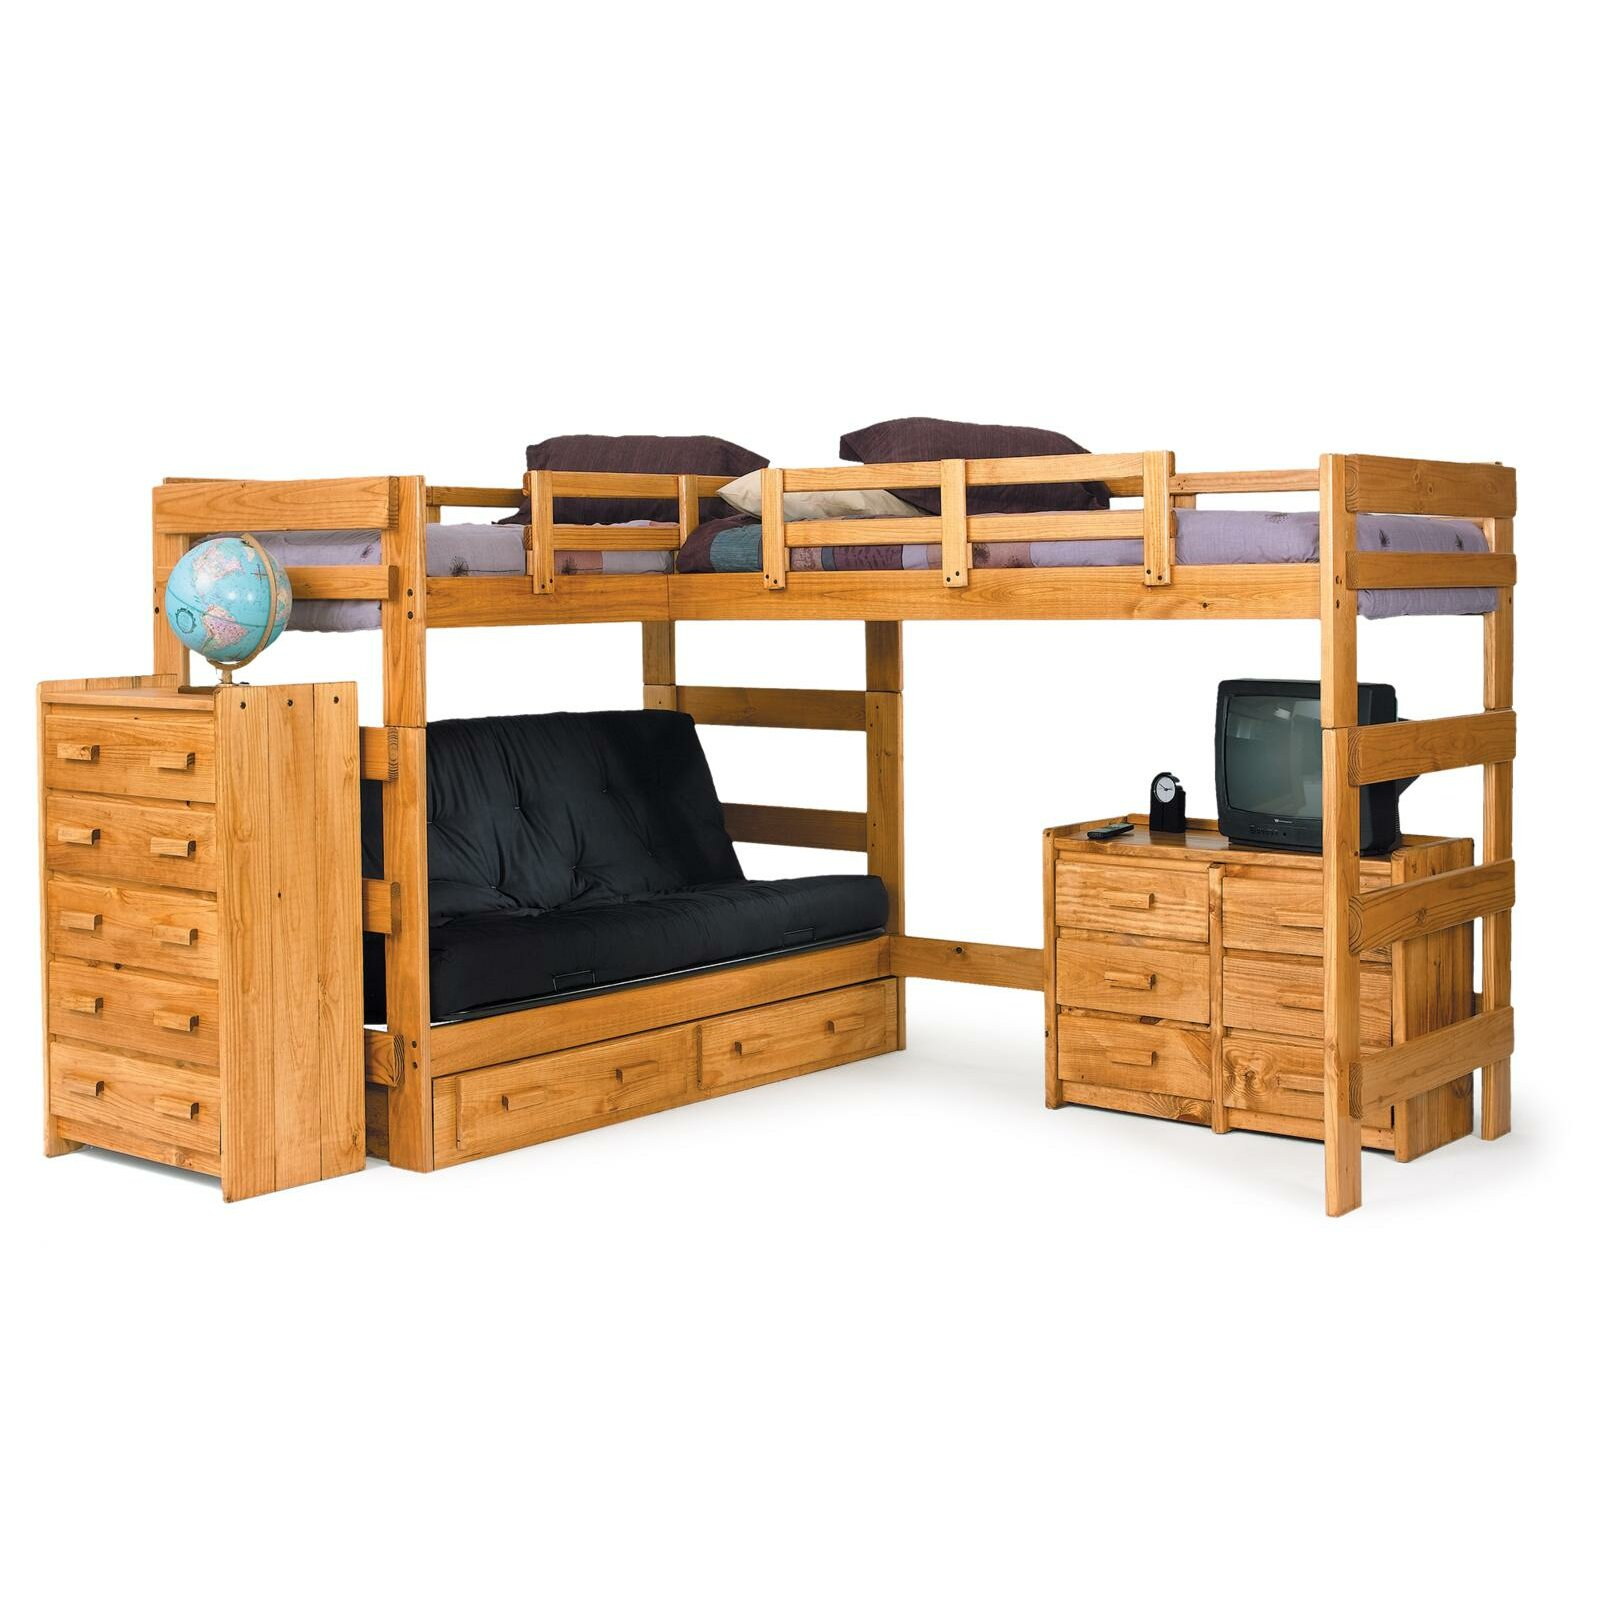 Chelsea home l shaped bunk bed customizable bedroom set for Bedroom sets with mattress included